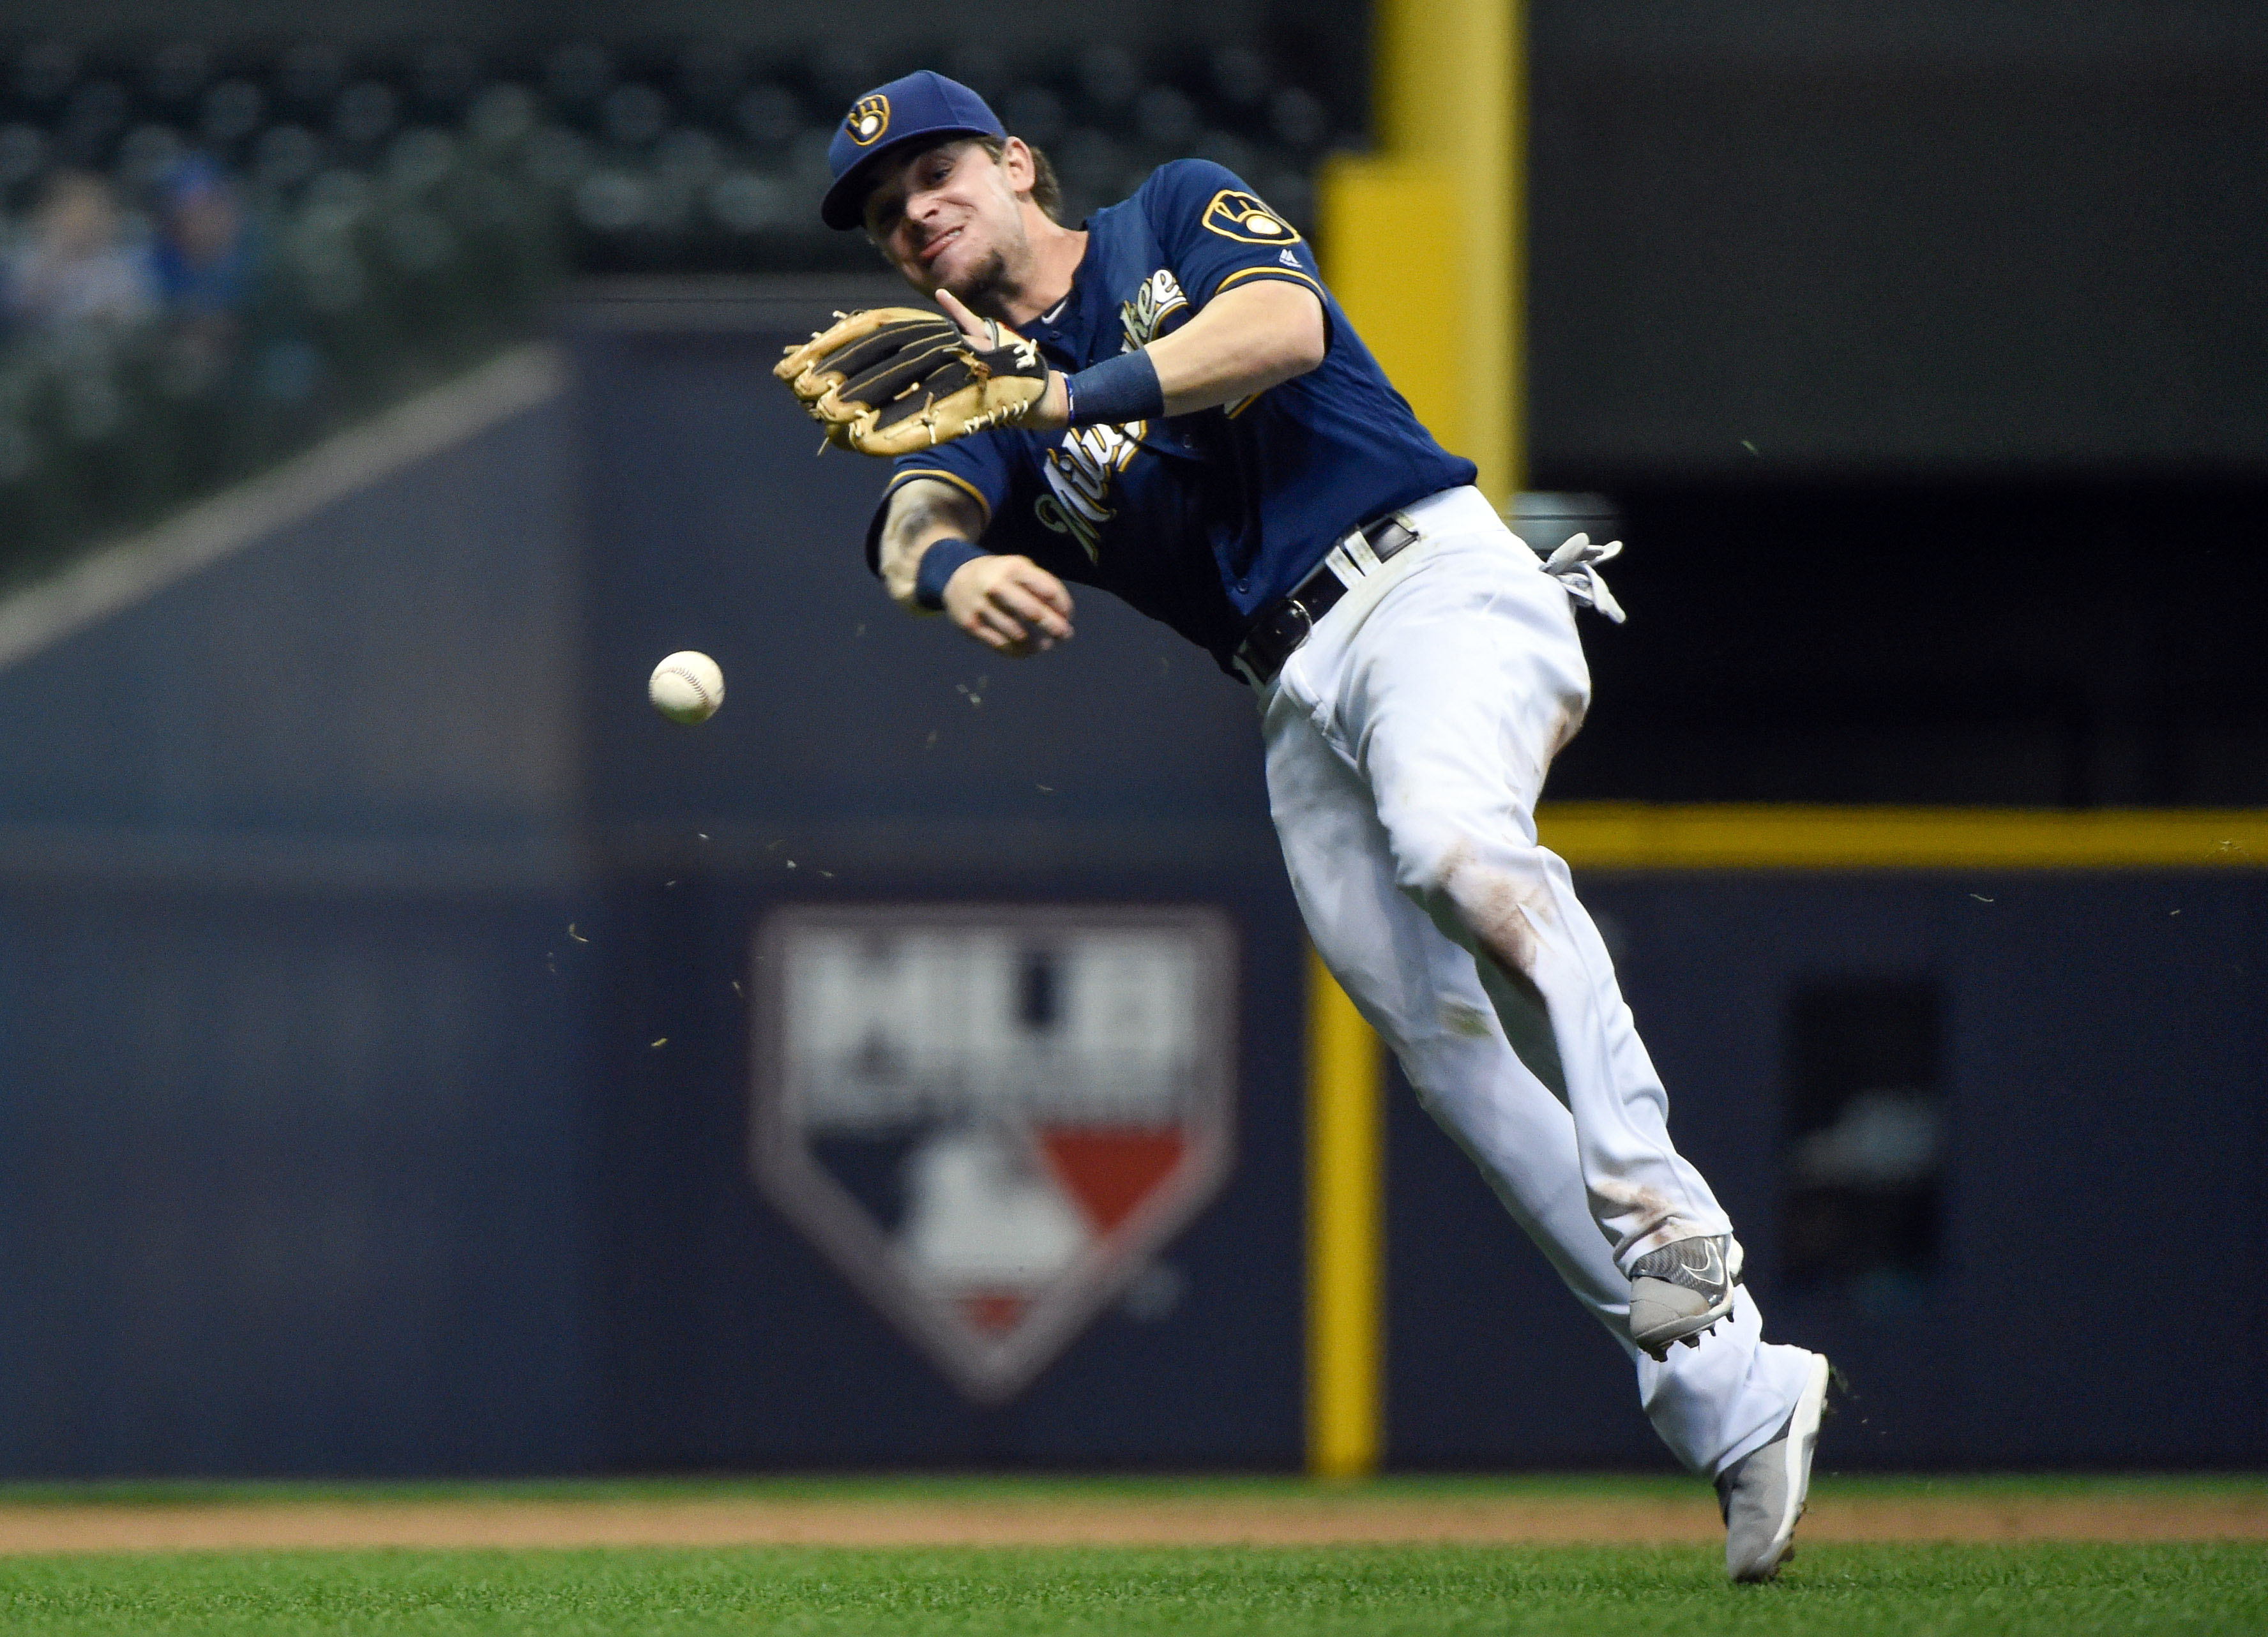 9292085-mlb-san-diego-padres-at-milwaukee-brewers